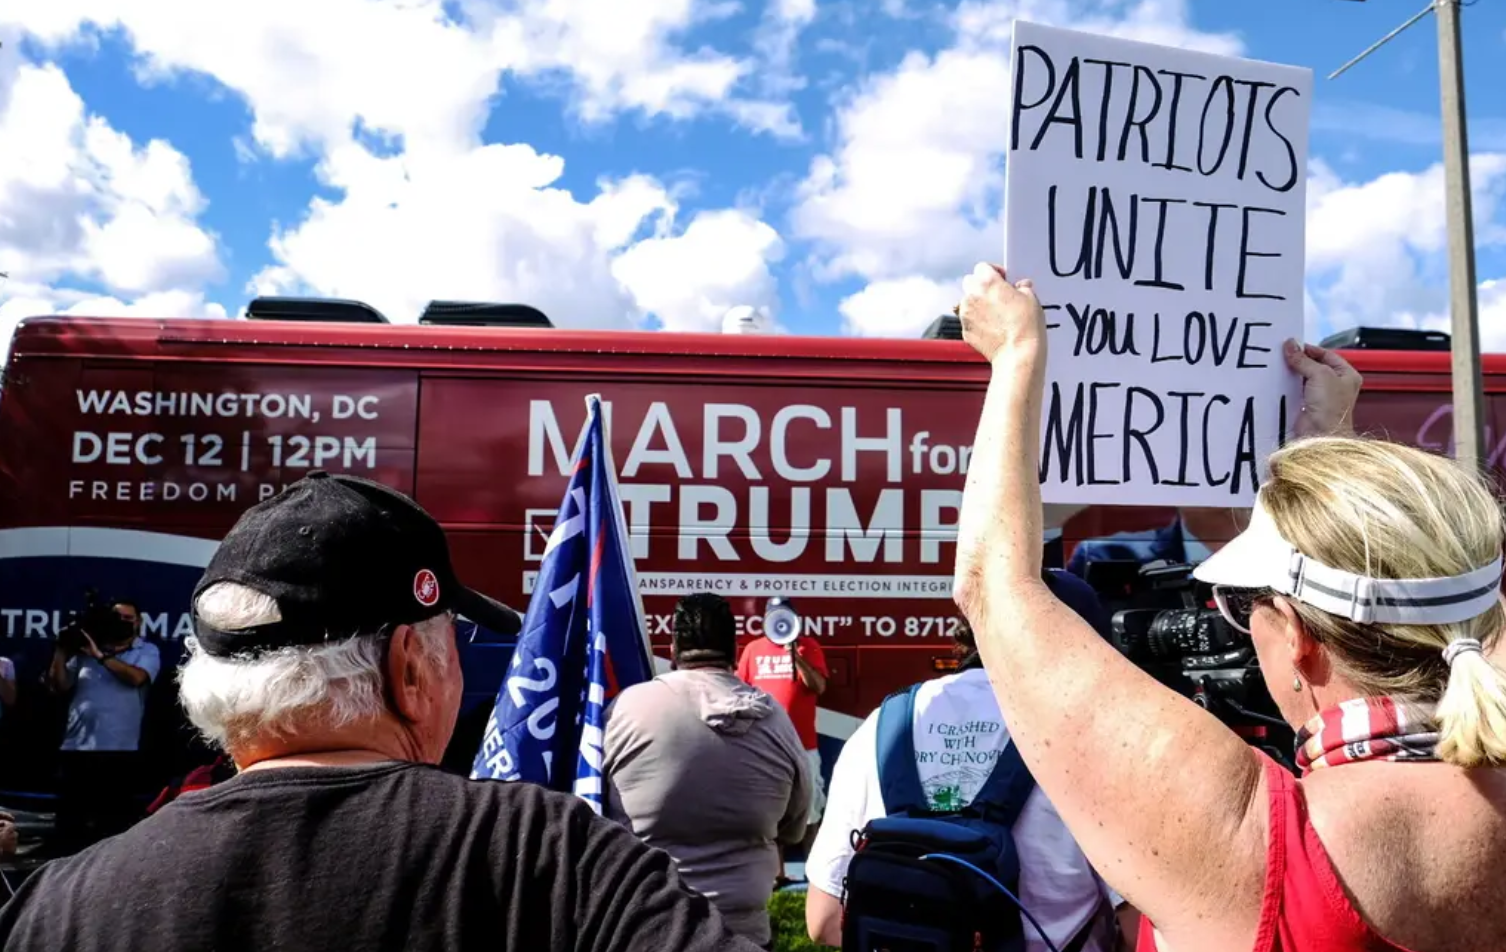 """Alt= """"March for Trump Busy with People Holding Pro-Trump Rally Signs"""""""